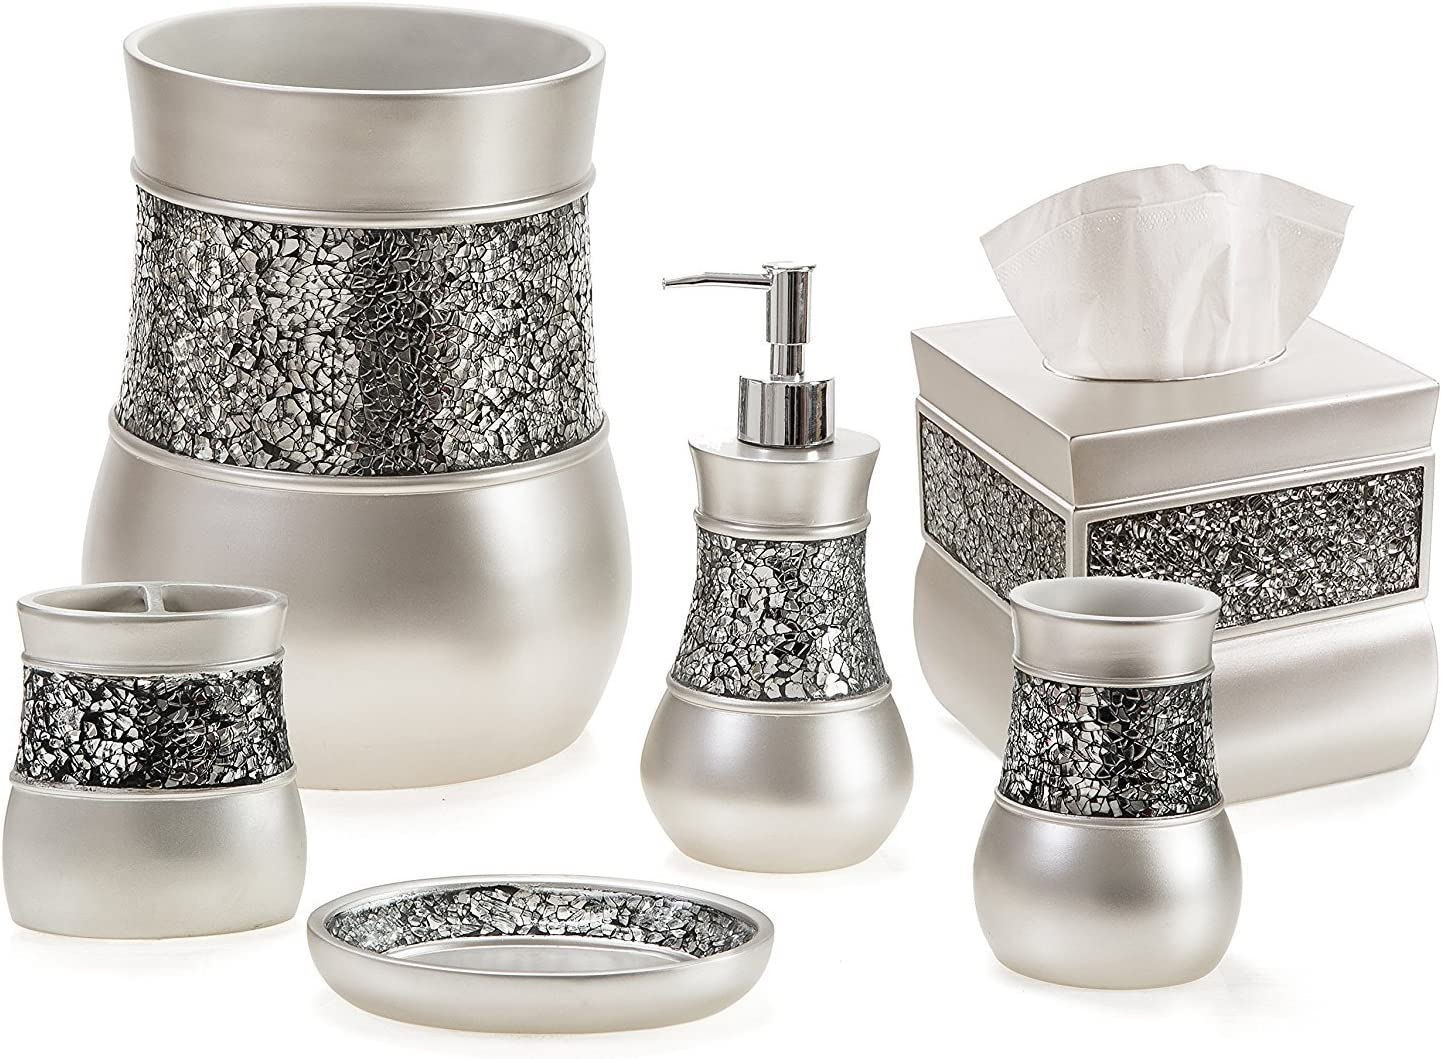 Amazon Com Creative Scents Bathroom Accessory Set Decorative 6 Piece Bathroom Set Features Soap Dispenser Toothbrush Holder Tumbler Soap Dish Tissue Box Cover Trash Can Silver Colored Home Kitchen